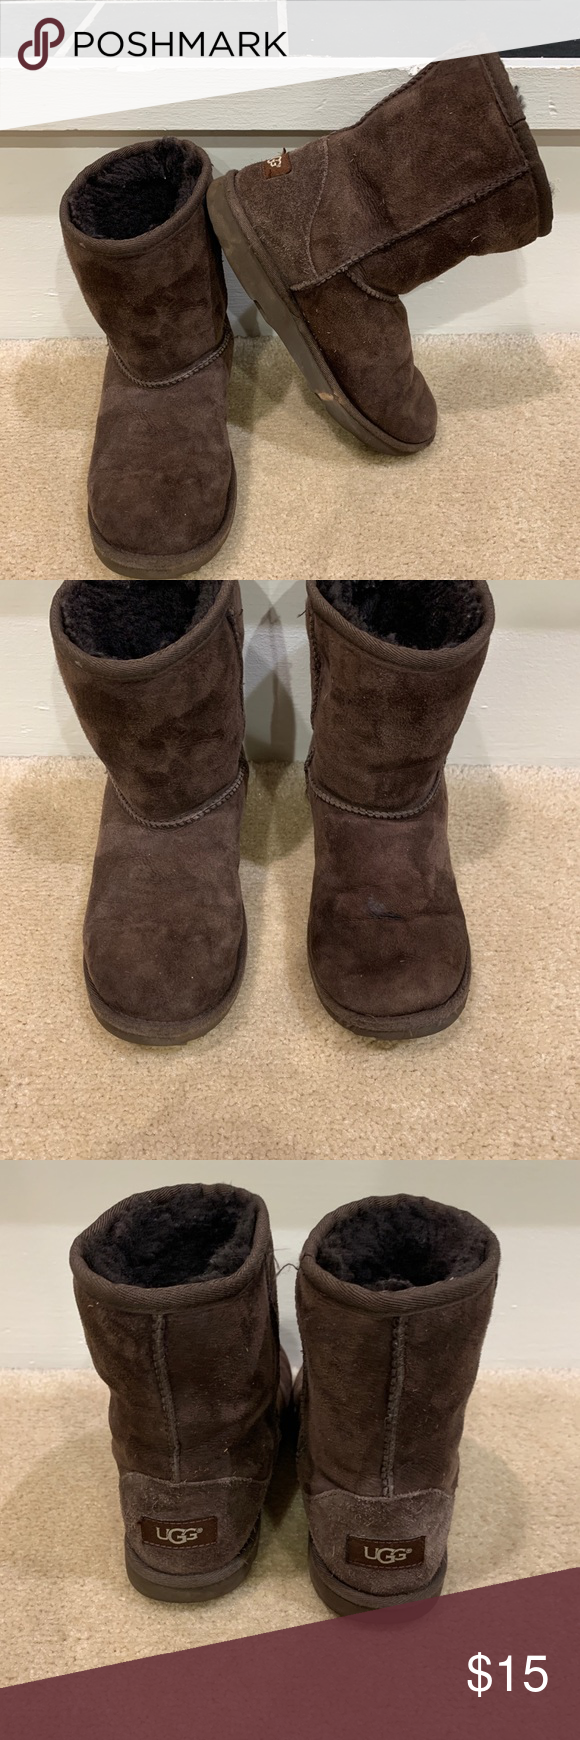 girls UGGs size 4 in 2020   Girl uggs